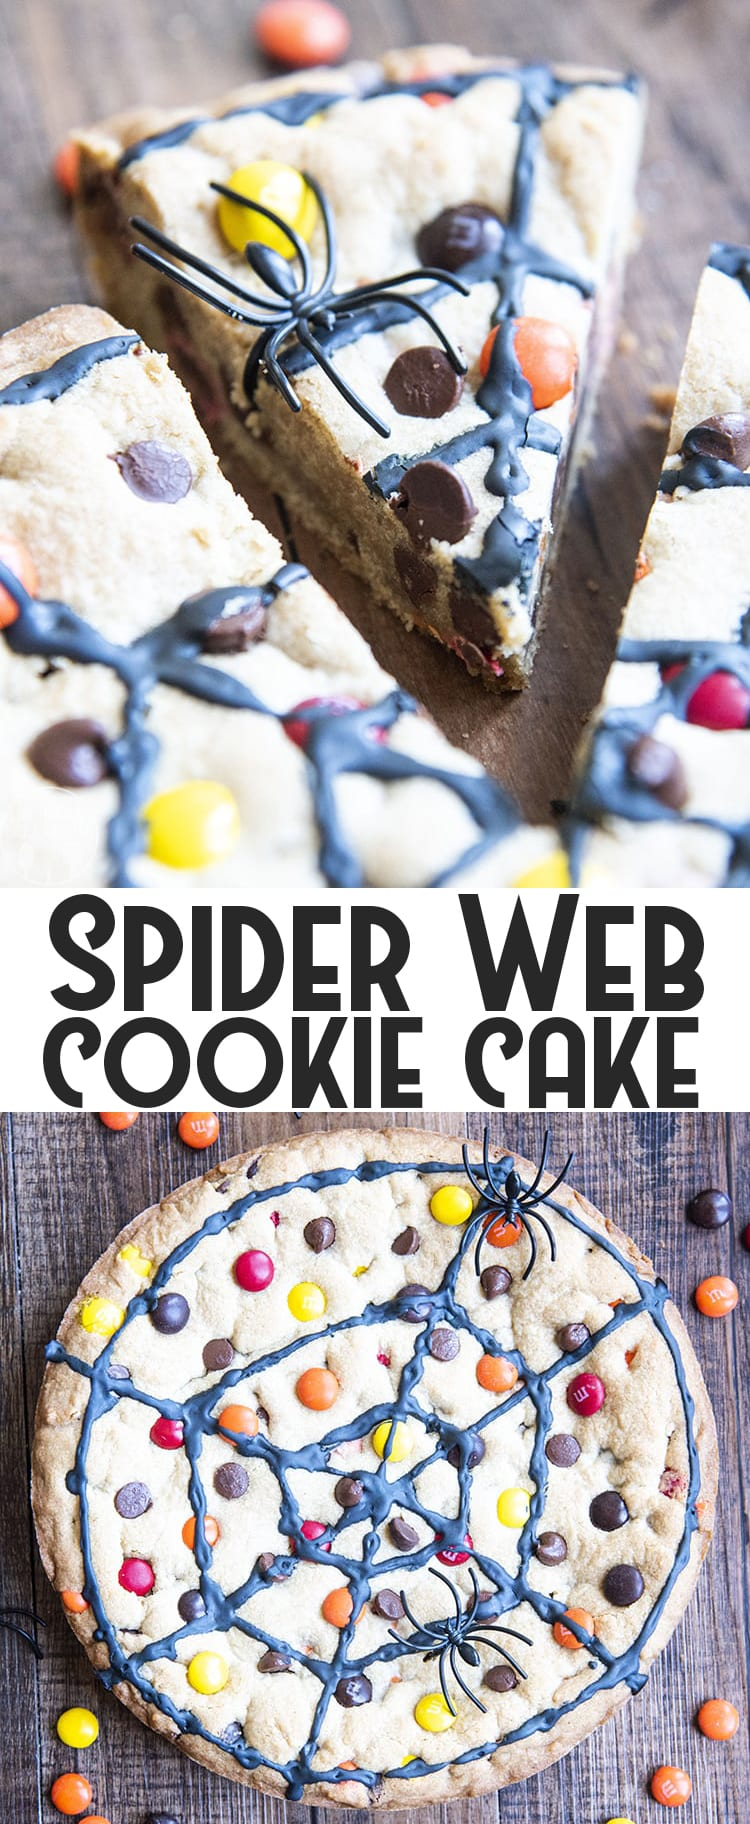 This giant spiderweb cookie cake is the perfect Halloween dessert! It's a giant chocolate chip cookie, decorated to look like a spider web. It's so fun for kids and adults alike!